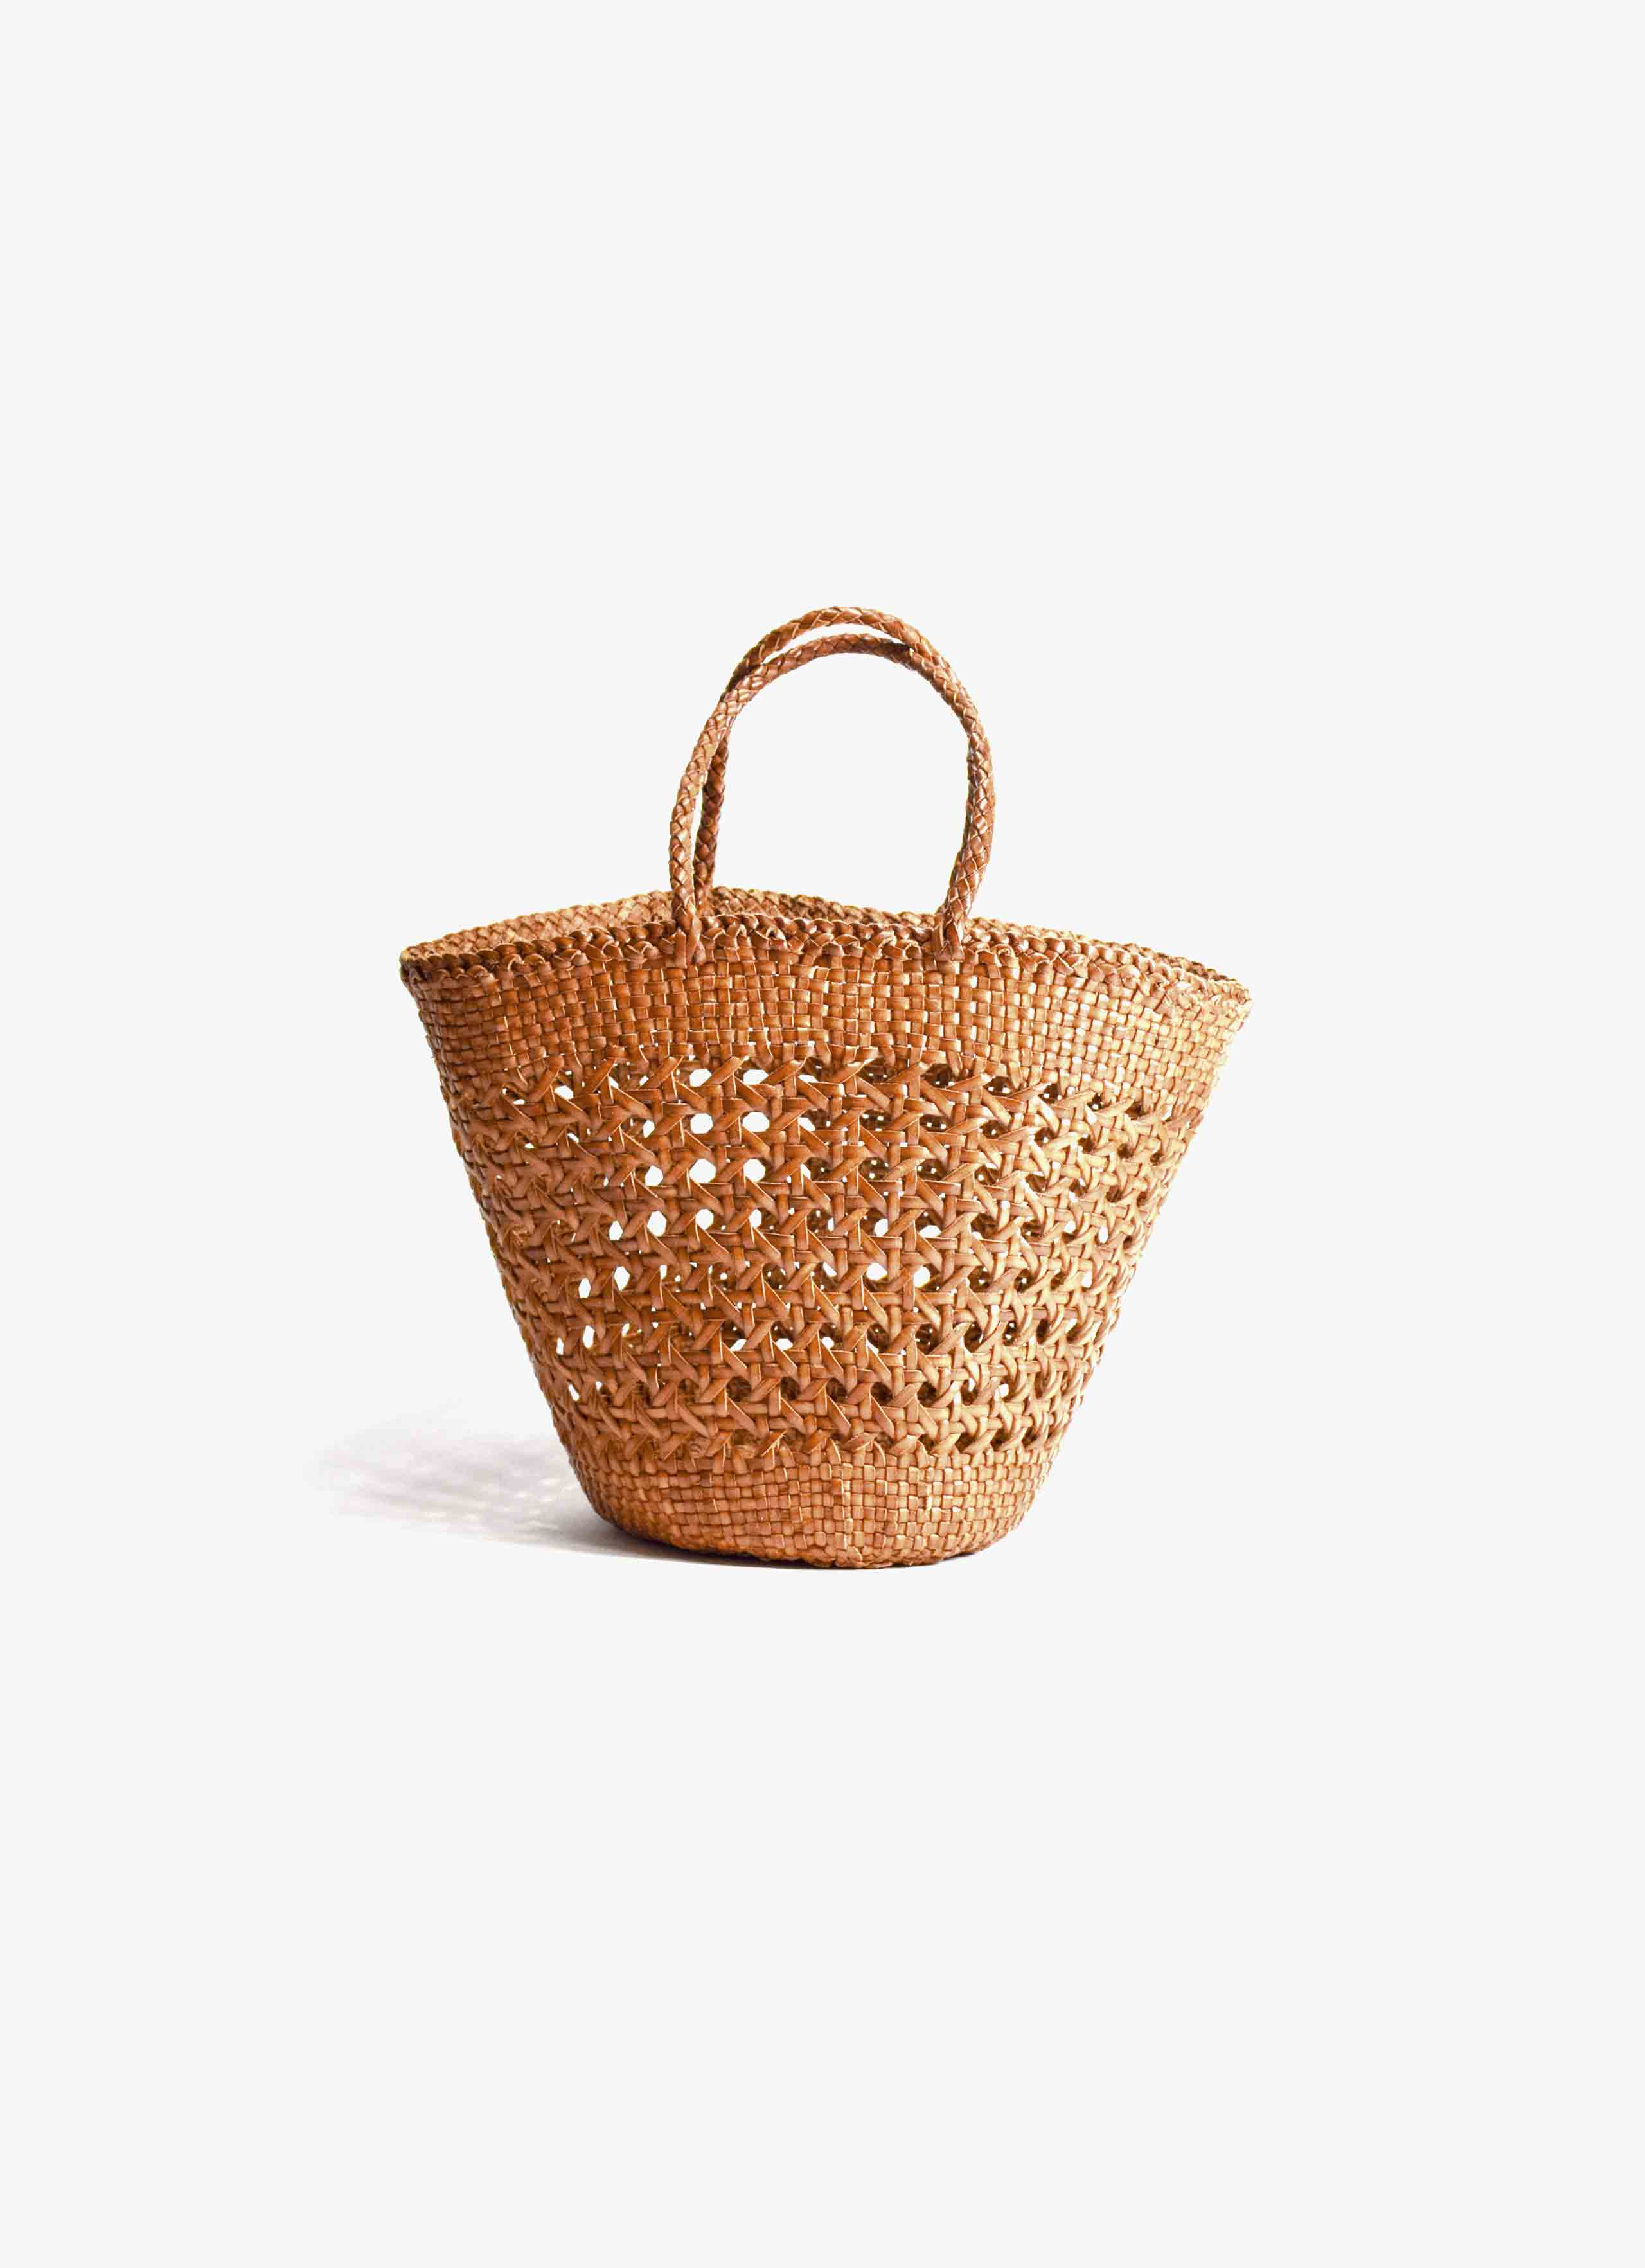 Dragon Diffusion - Cannage Myra - Leather Basket Bag